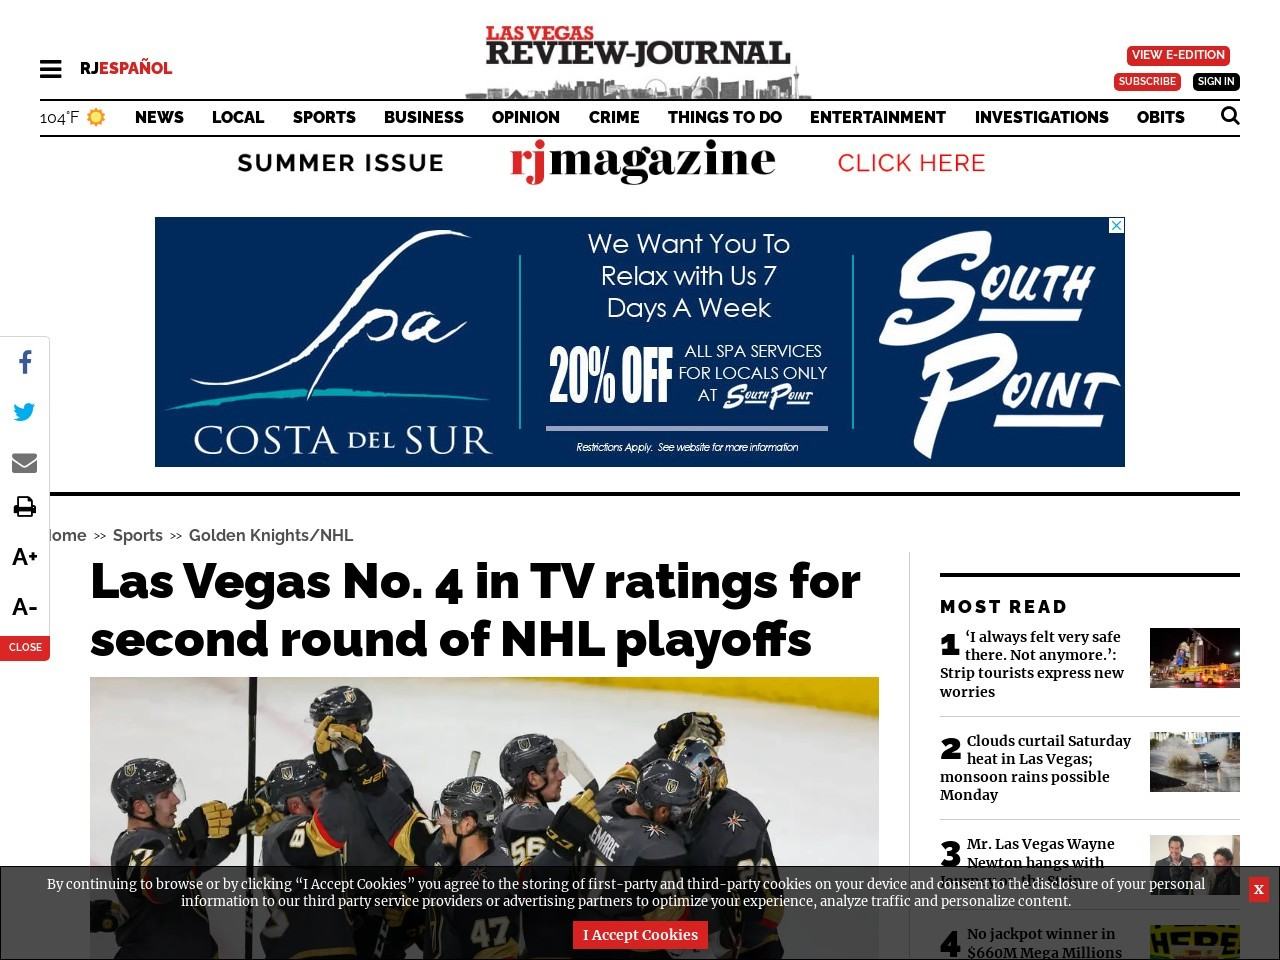 Las Vegas No. 4 in TV ratings for second round of NHL playoffs